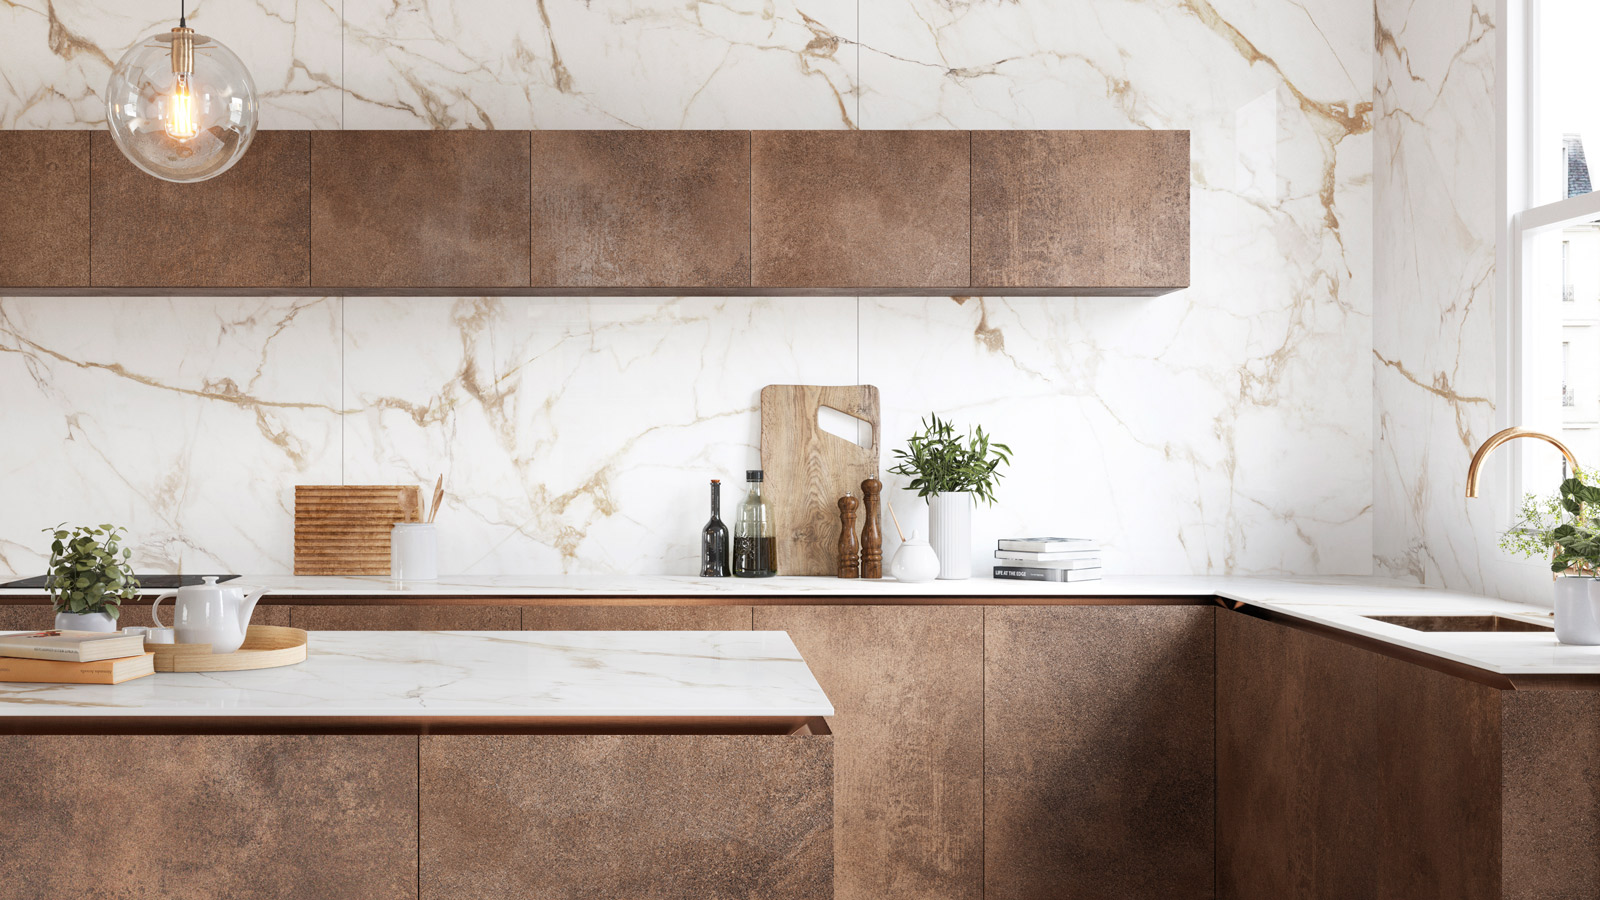 Give your kitchen a makeover with chic collections by Porcelanosa